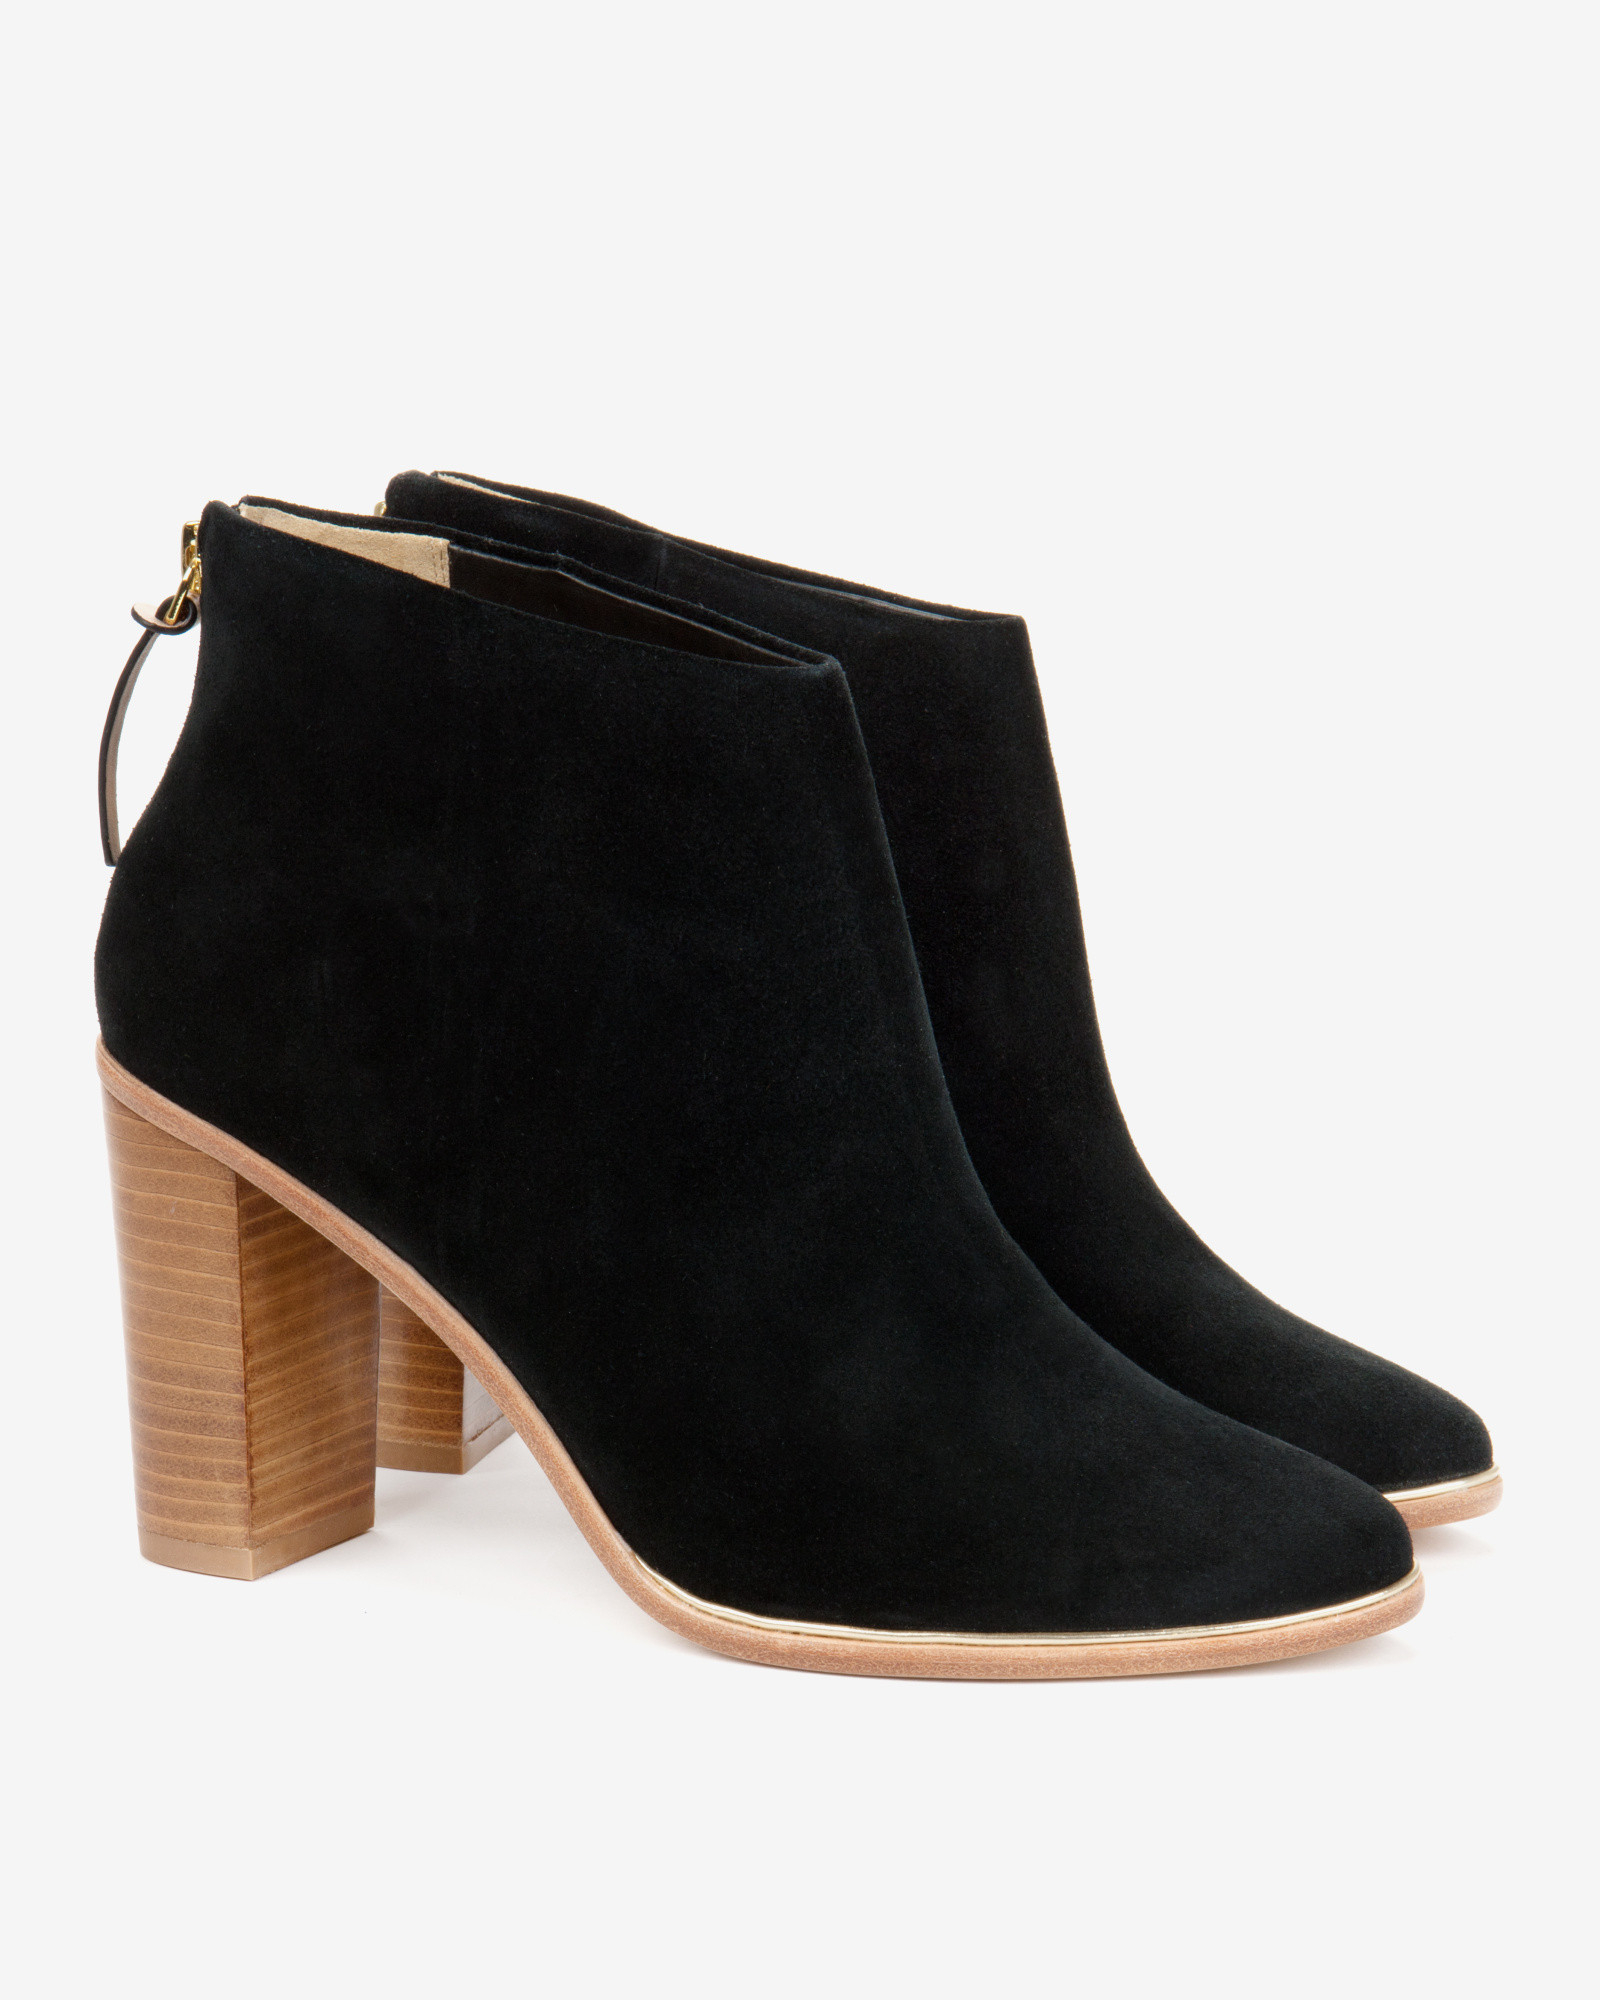 ted-baker-black-leather-heeled-ankle-boots-product-1-27722833-2-653080772-normal.jpg